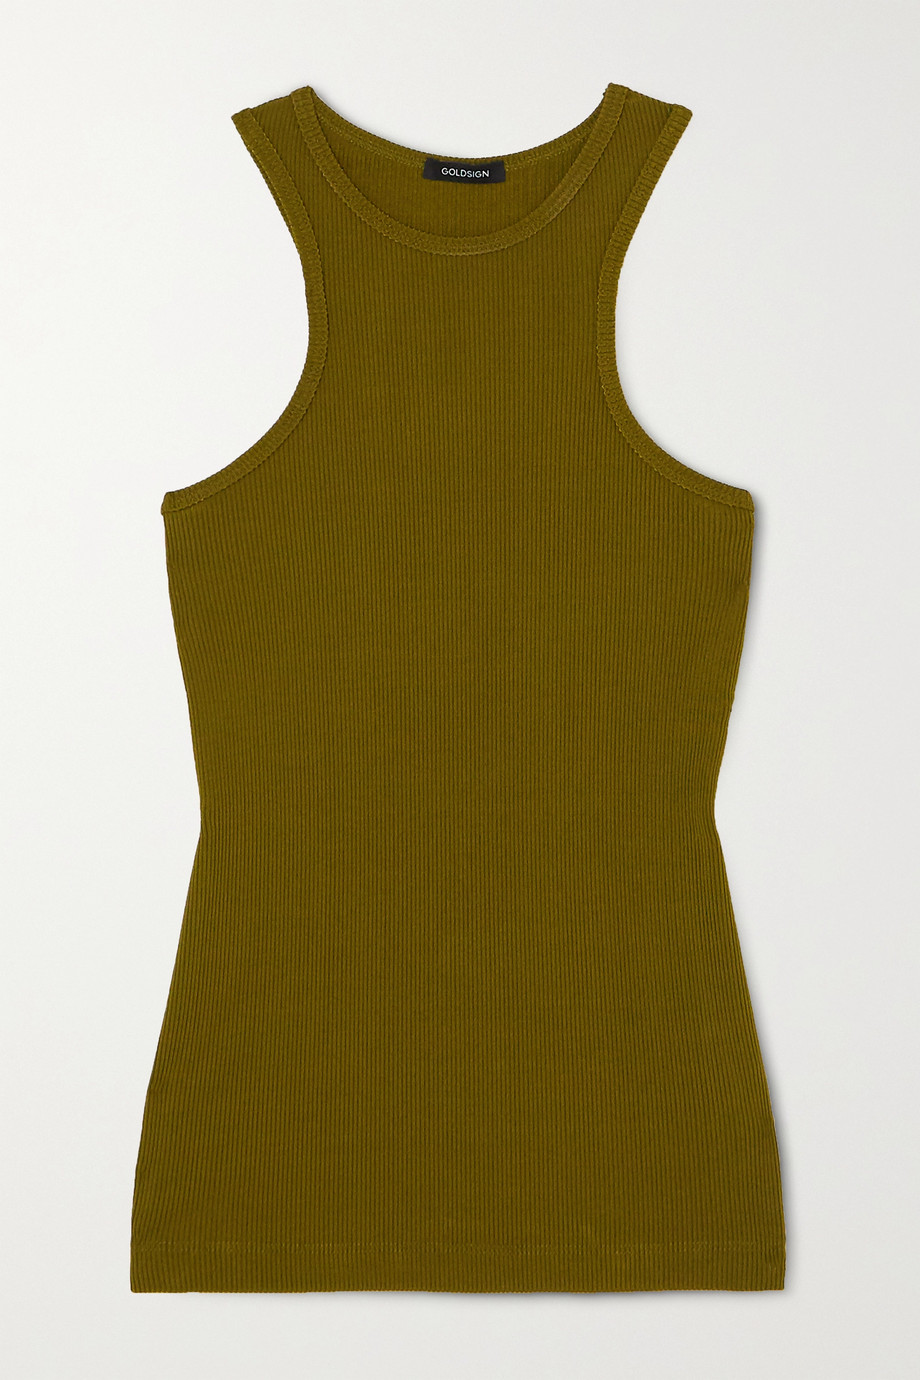 GOLDSIGN + NET SUSTAIN ribbed-knit tank